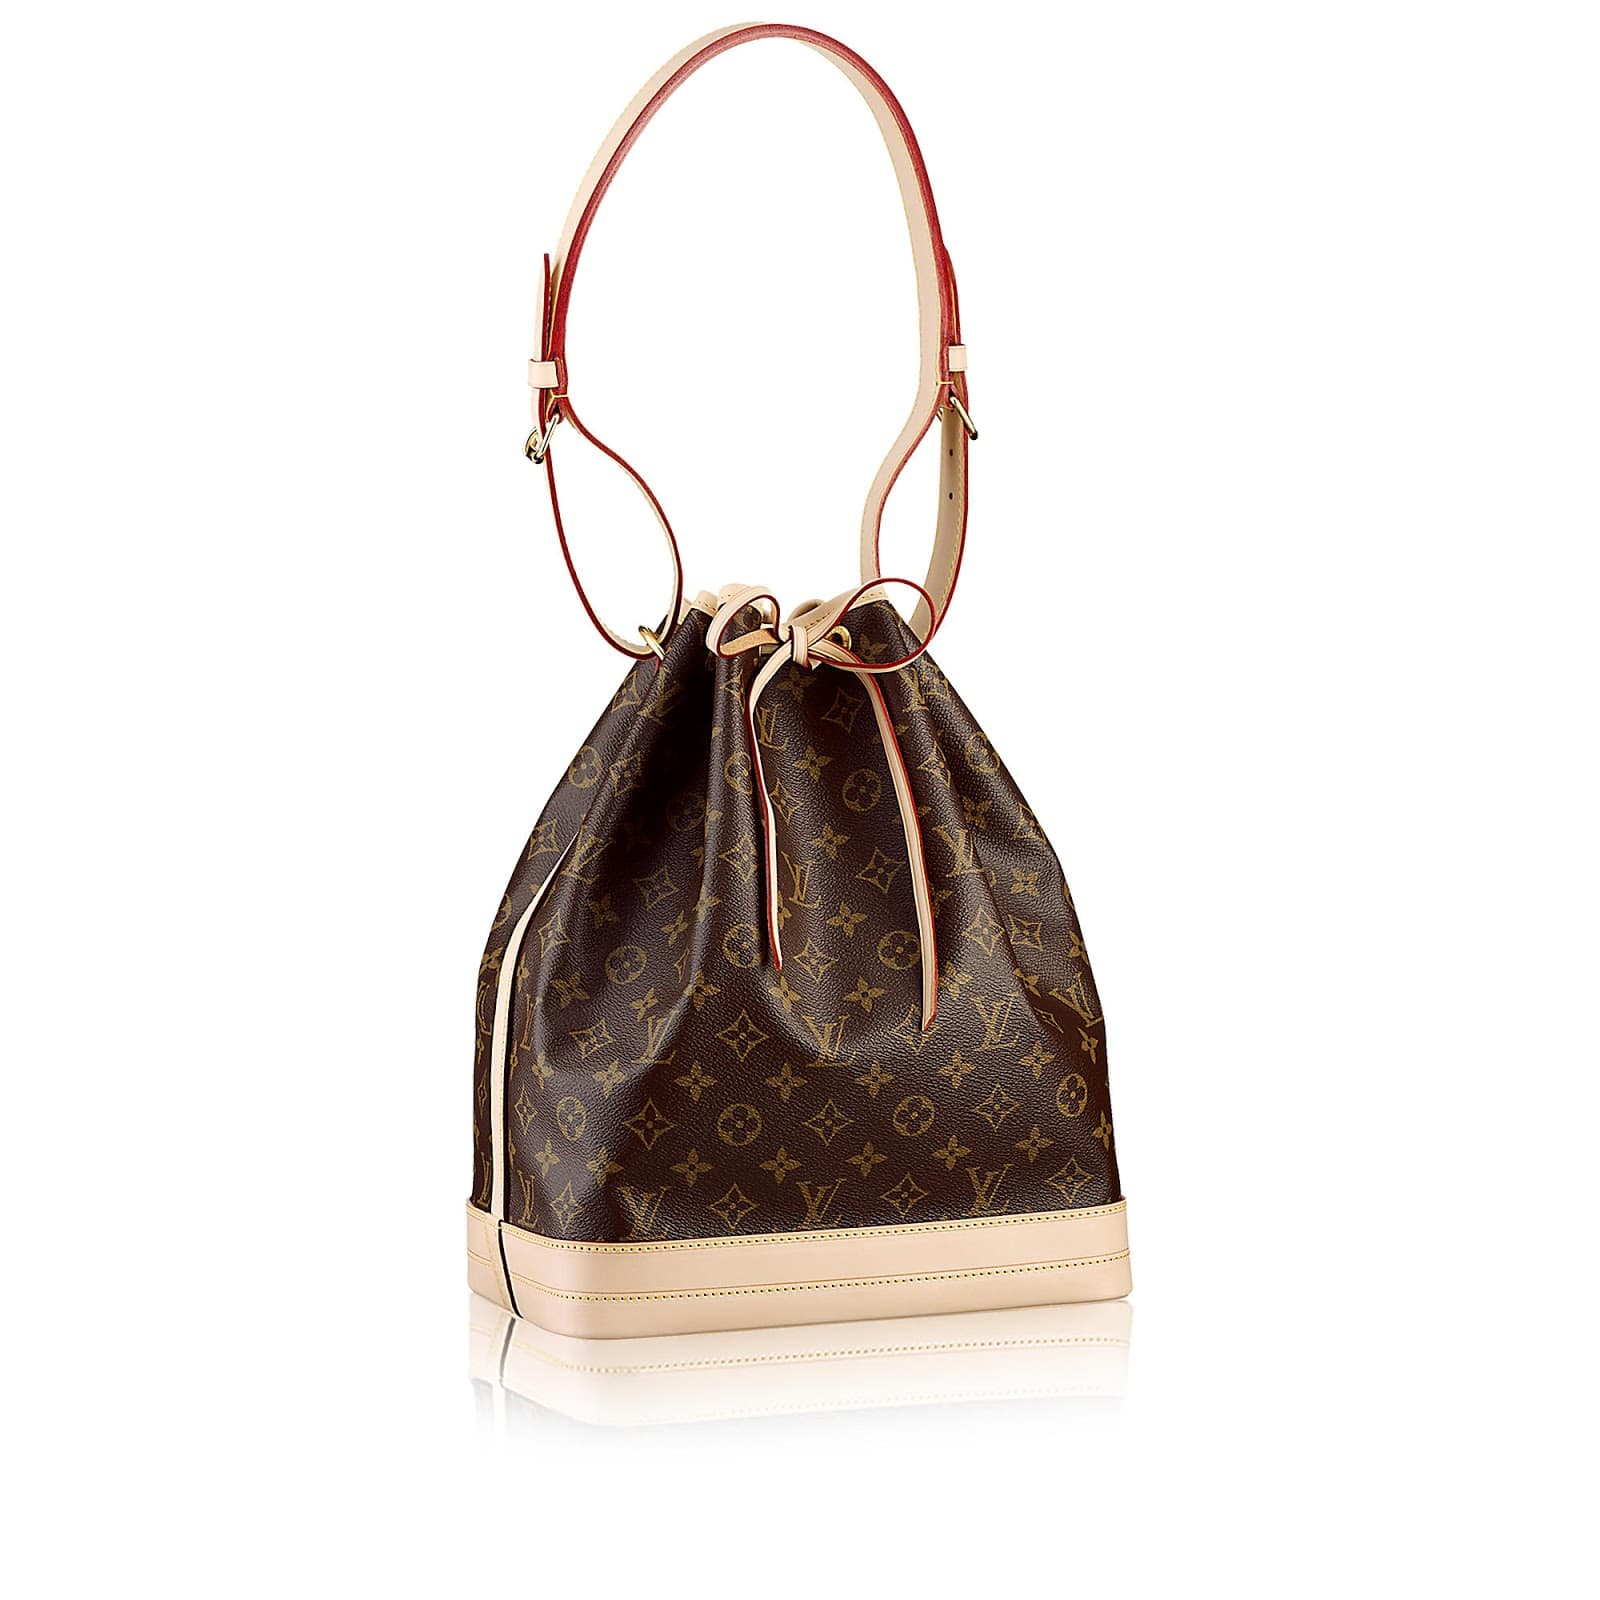 bf2ba09c3d5c ICONIC BAGS AND THE STORIES BEHIND THEM - Prendo Blog